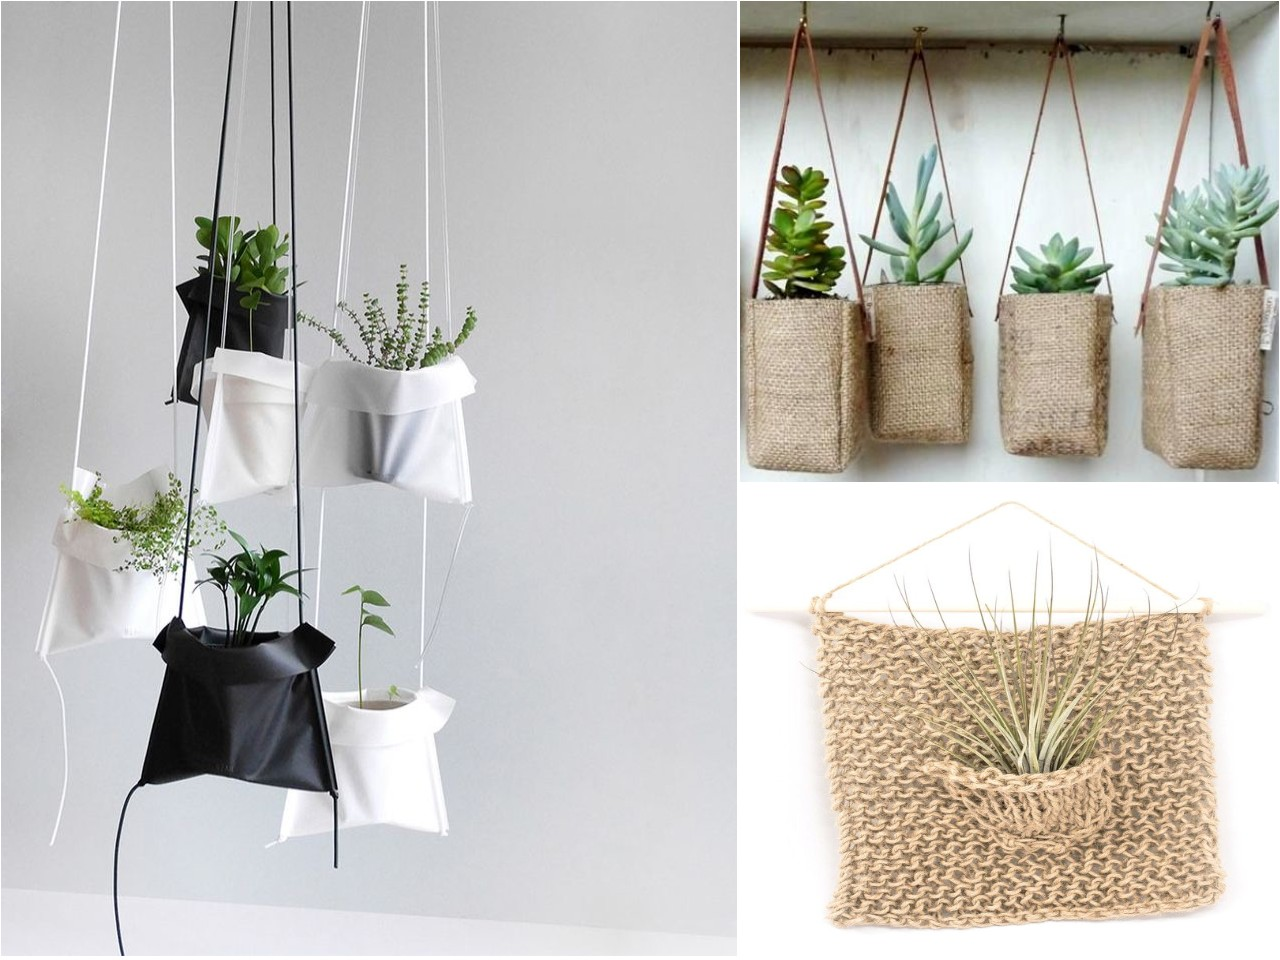 10 ideas de decoraci n con plantas colgantes for Ideas para decorar interiores